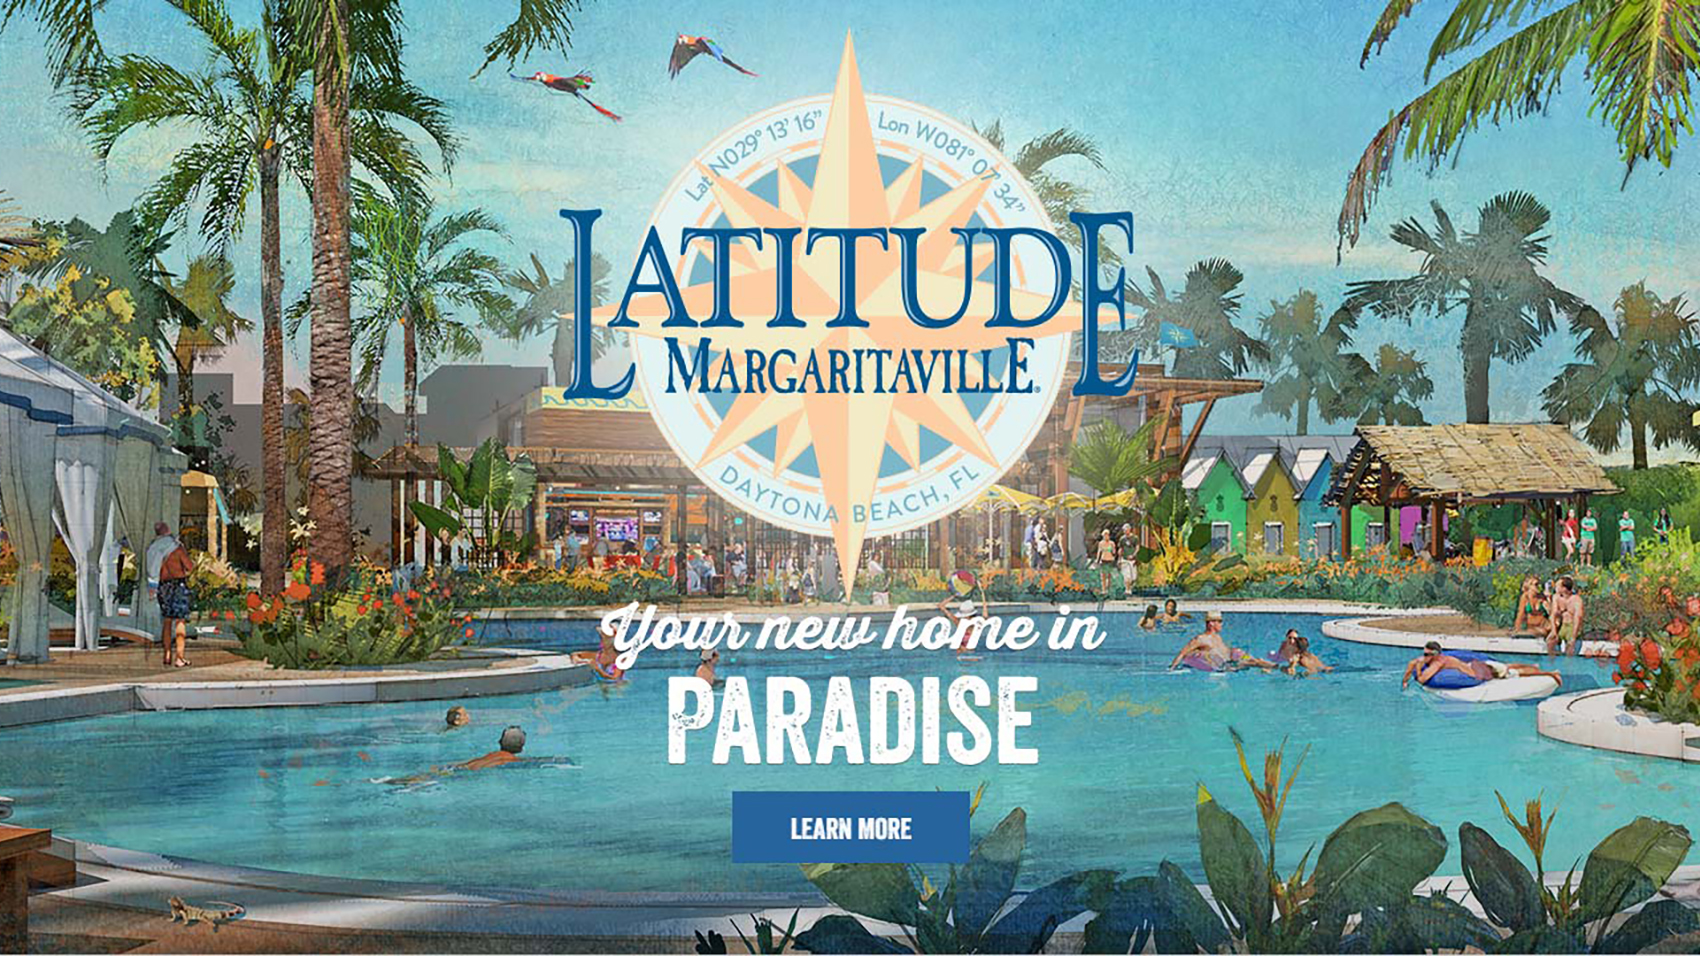 Two Bedroom Homes Hell Is A Jimmy Buffet Margaritaville Themed Retirement